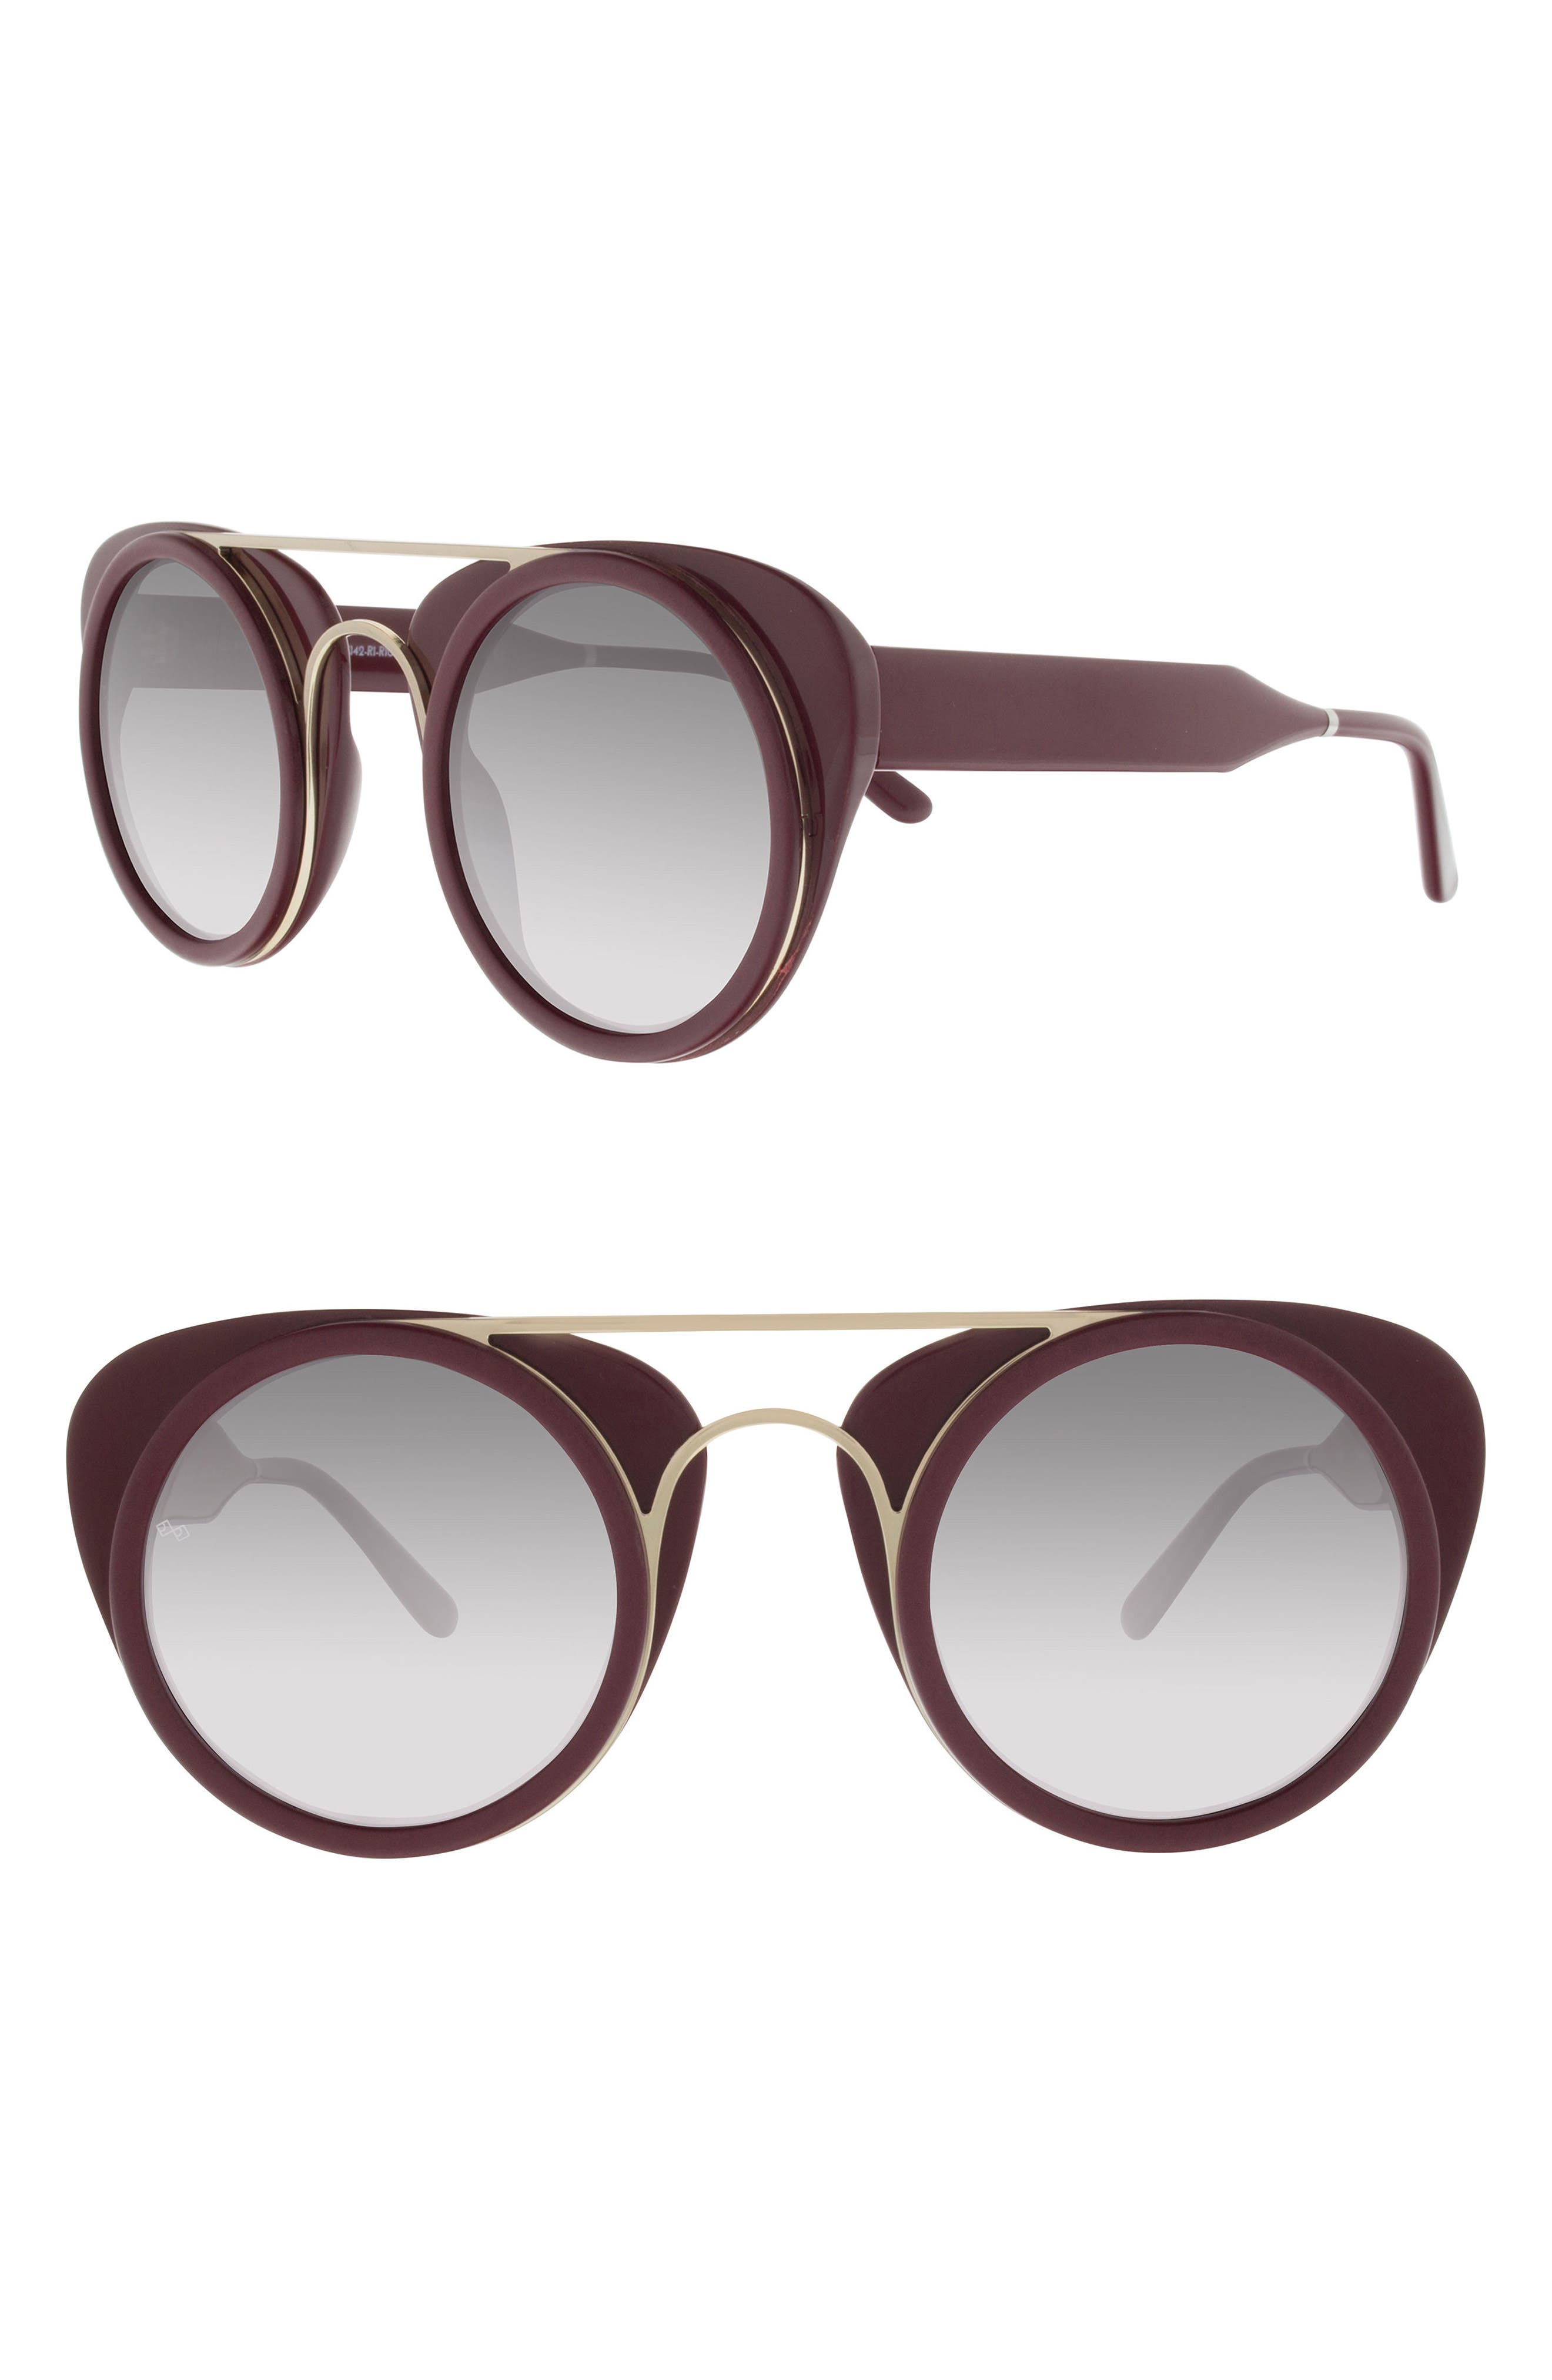 Soda Pop 3 47mm Round Sunglasses,                         Main,                         color, BURGUNDY/ BURGUNDY/ GOLD